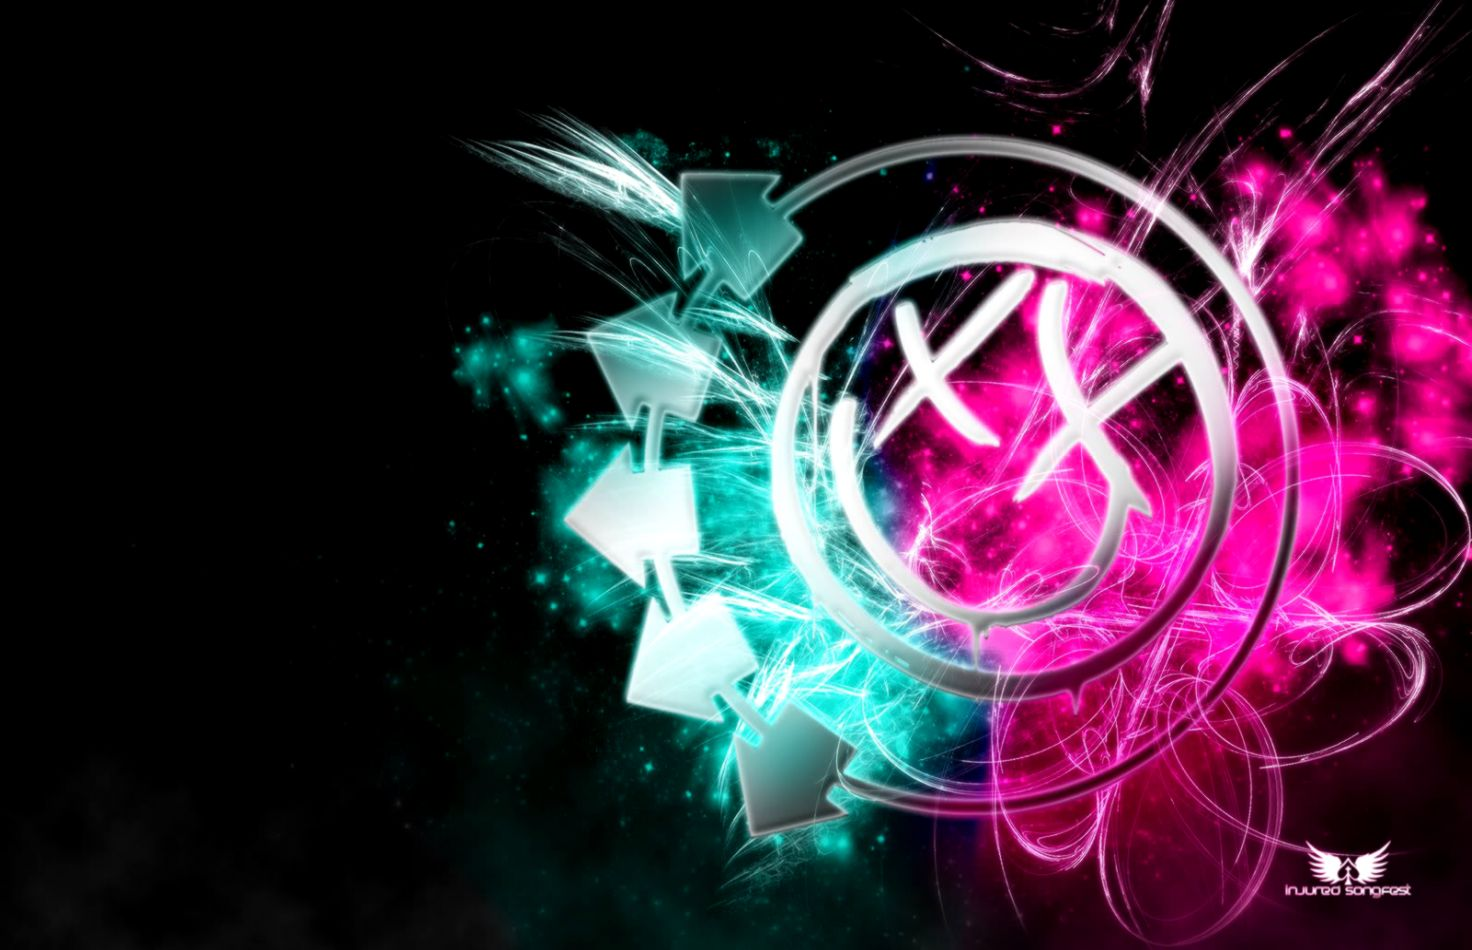 Blink 182 Wallpaper And Background Image 1600x1000 ID278548